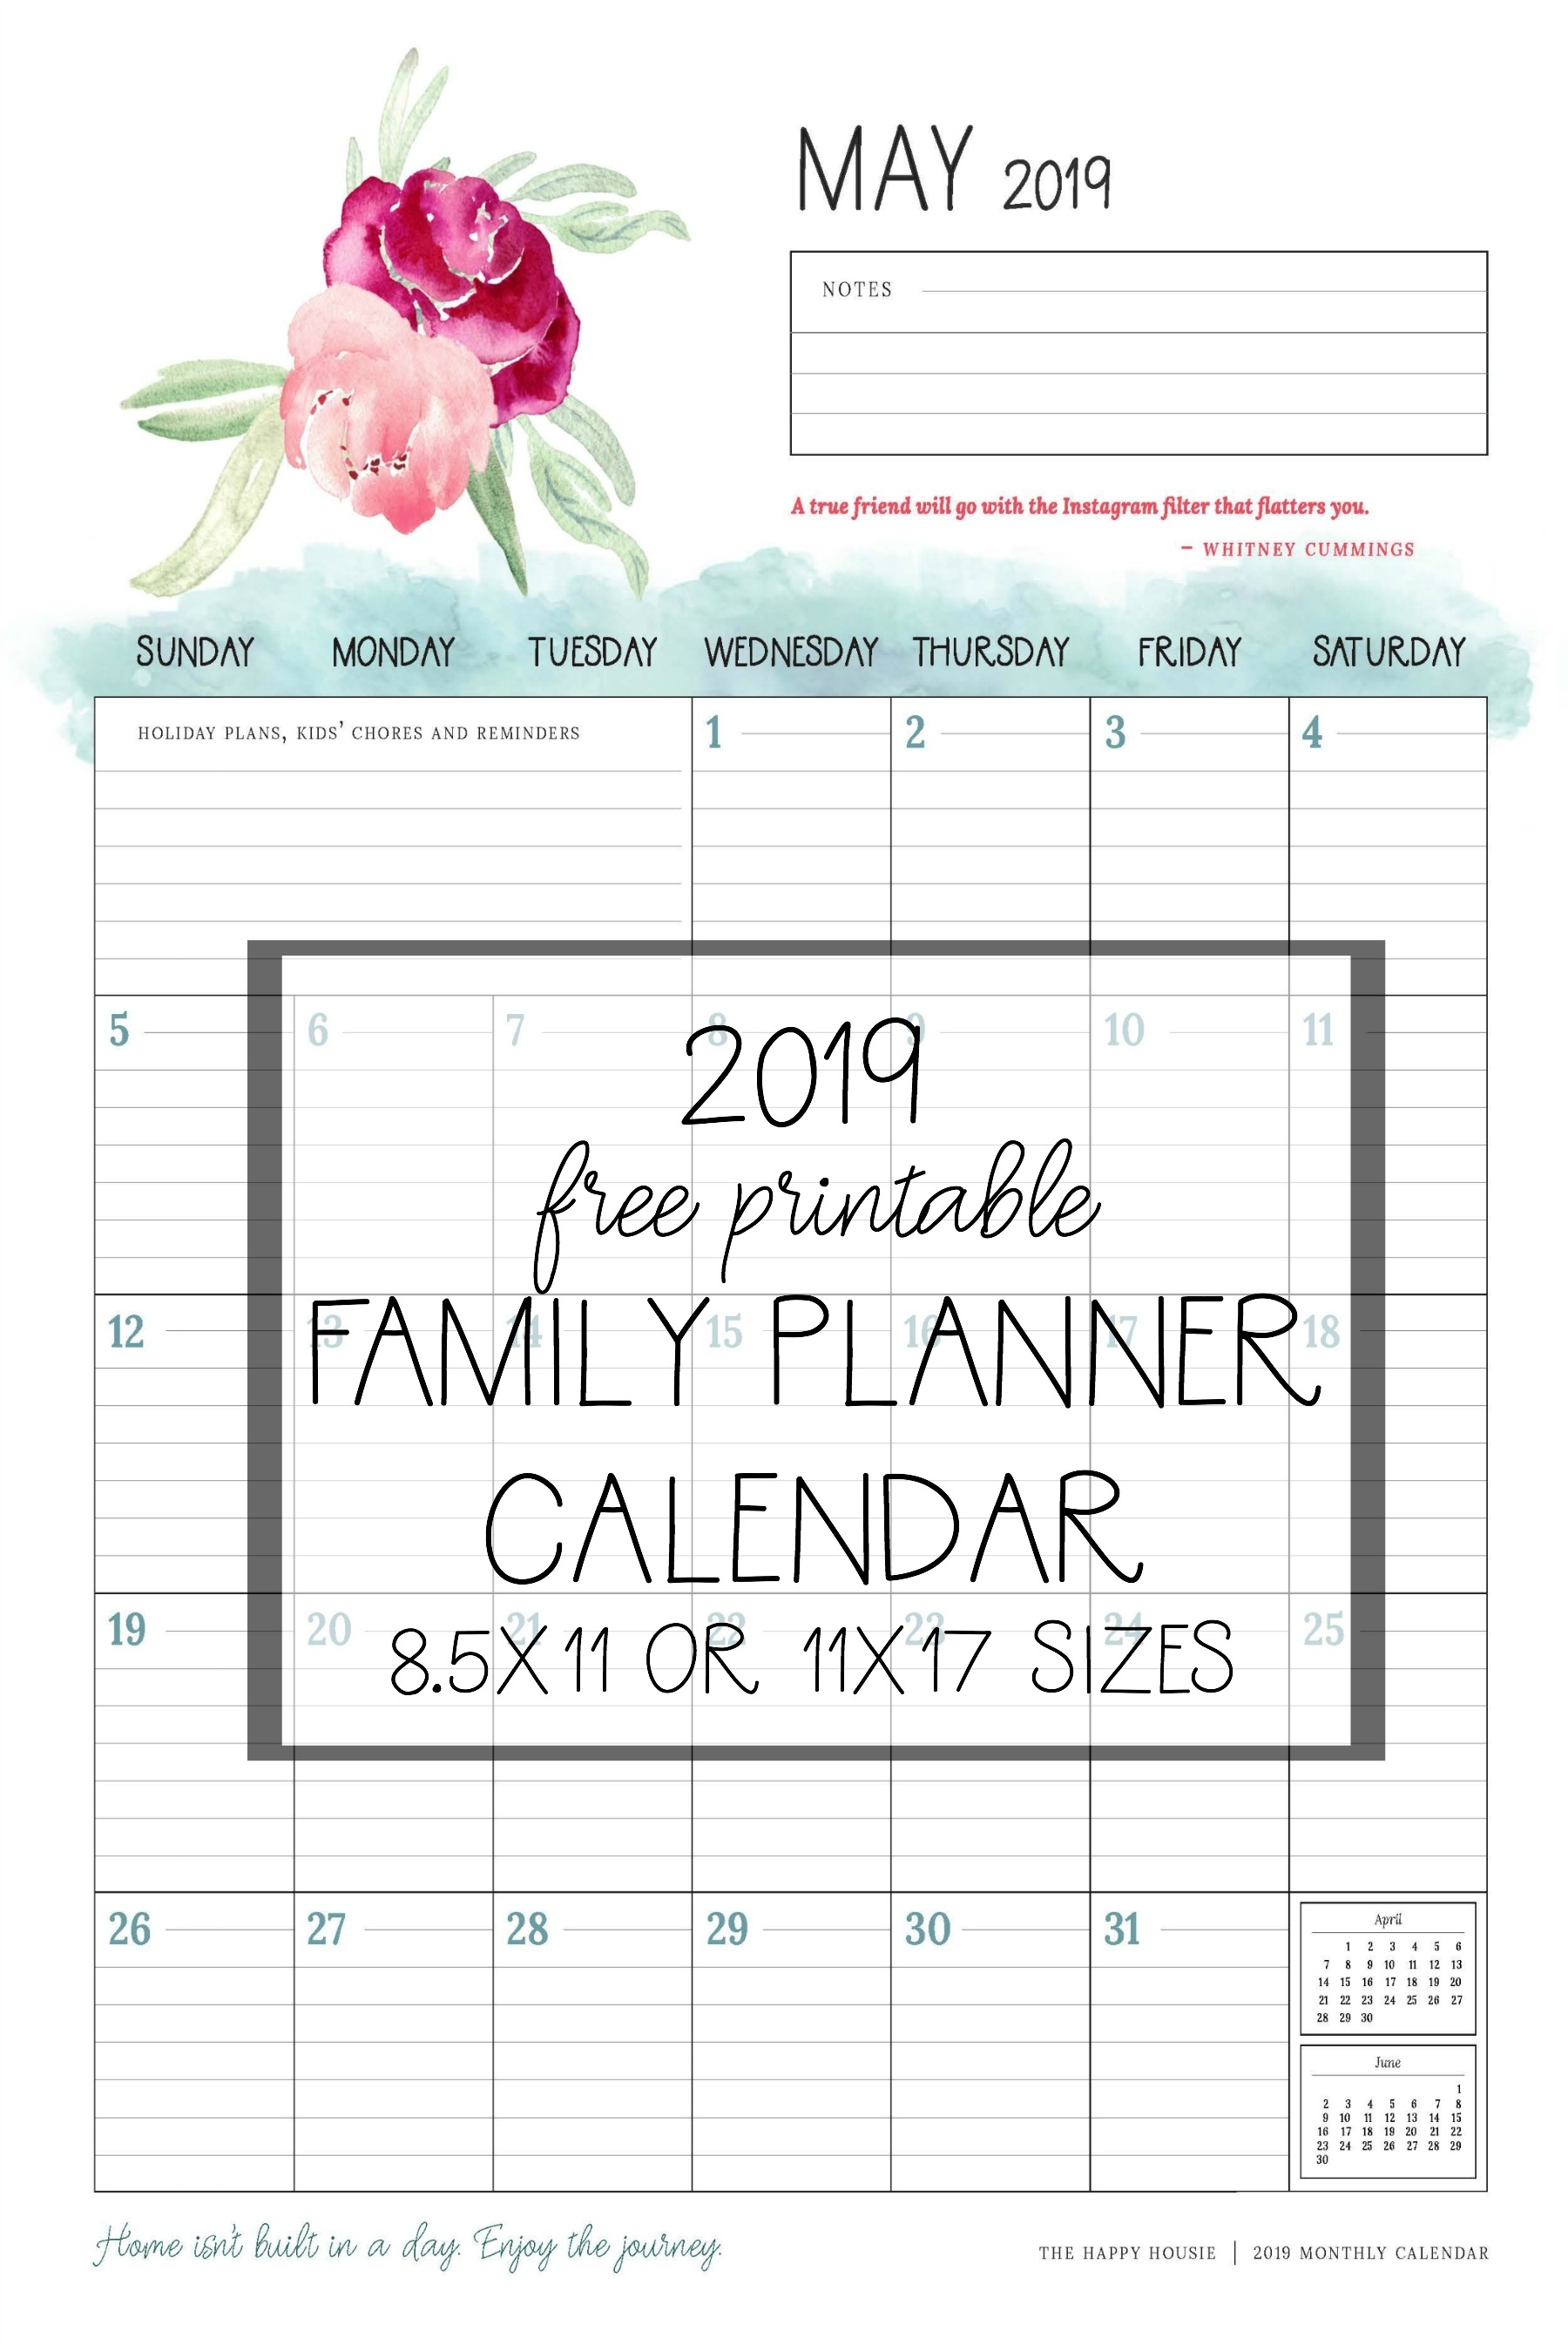 Free 2019 Printable Calendar Family Planner Organizer | The